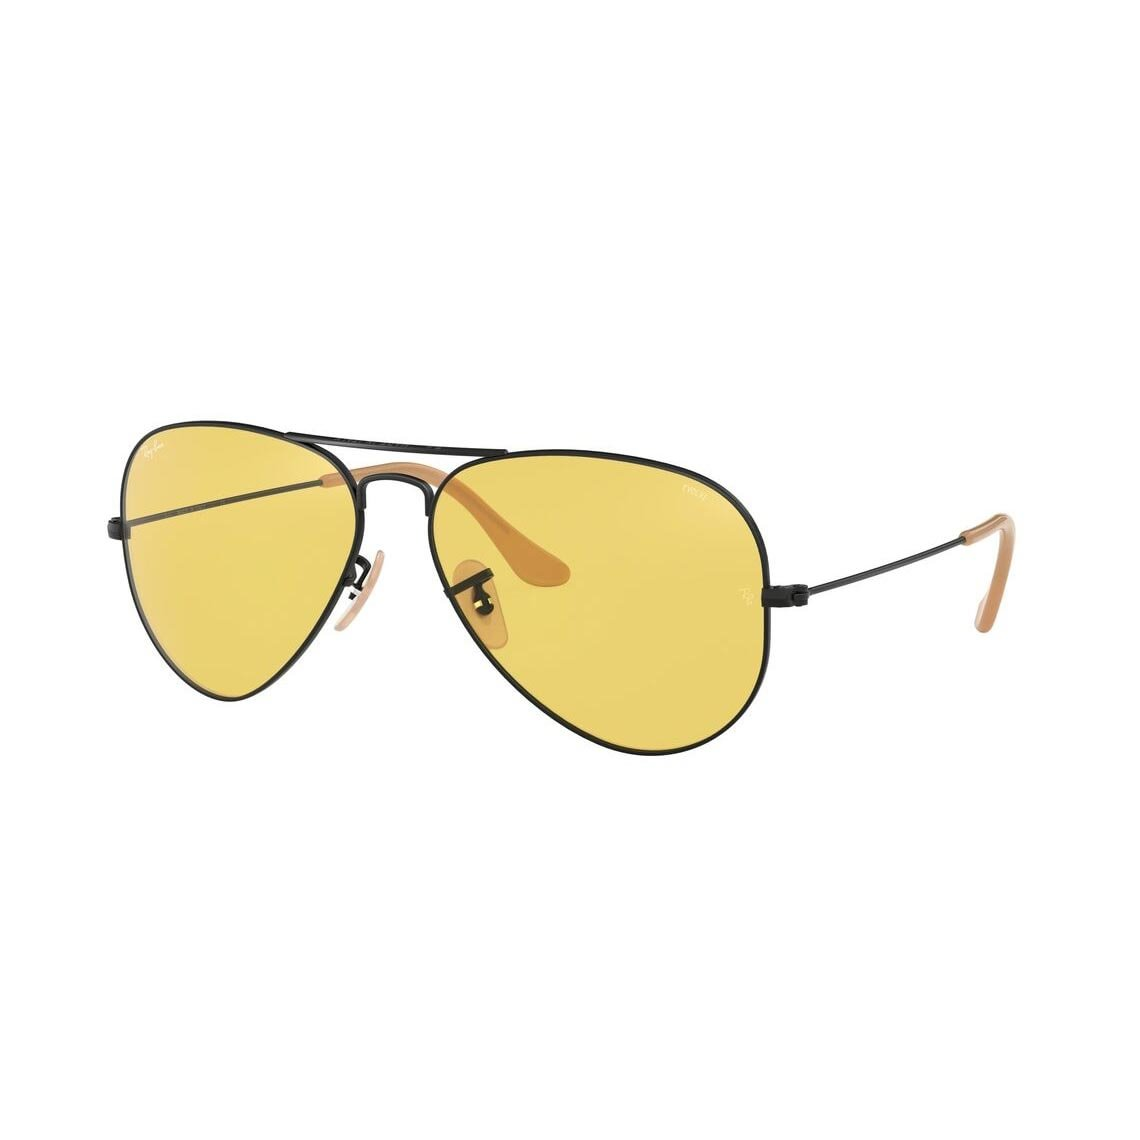 Ray-Ban Aviator RB3025 90664A 55